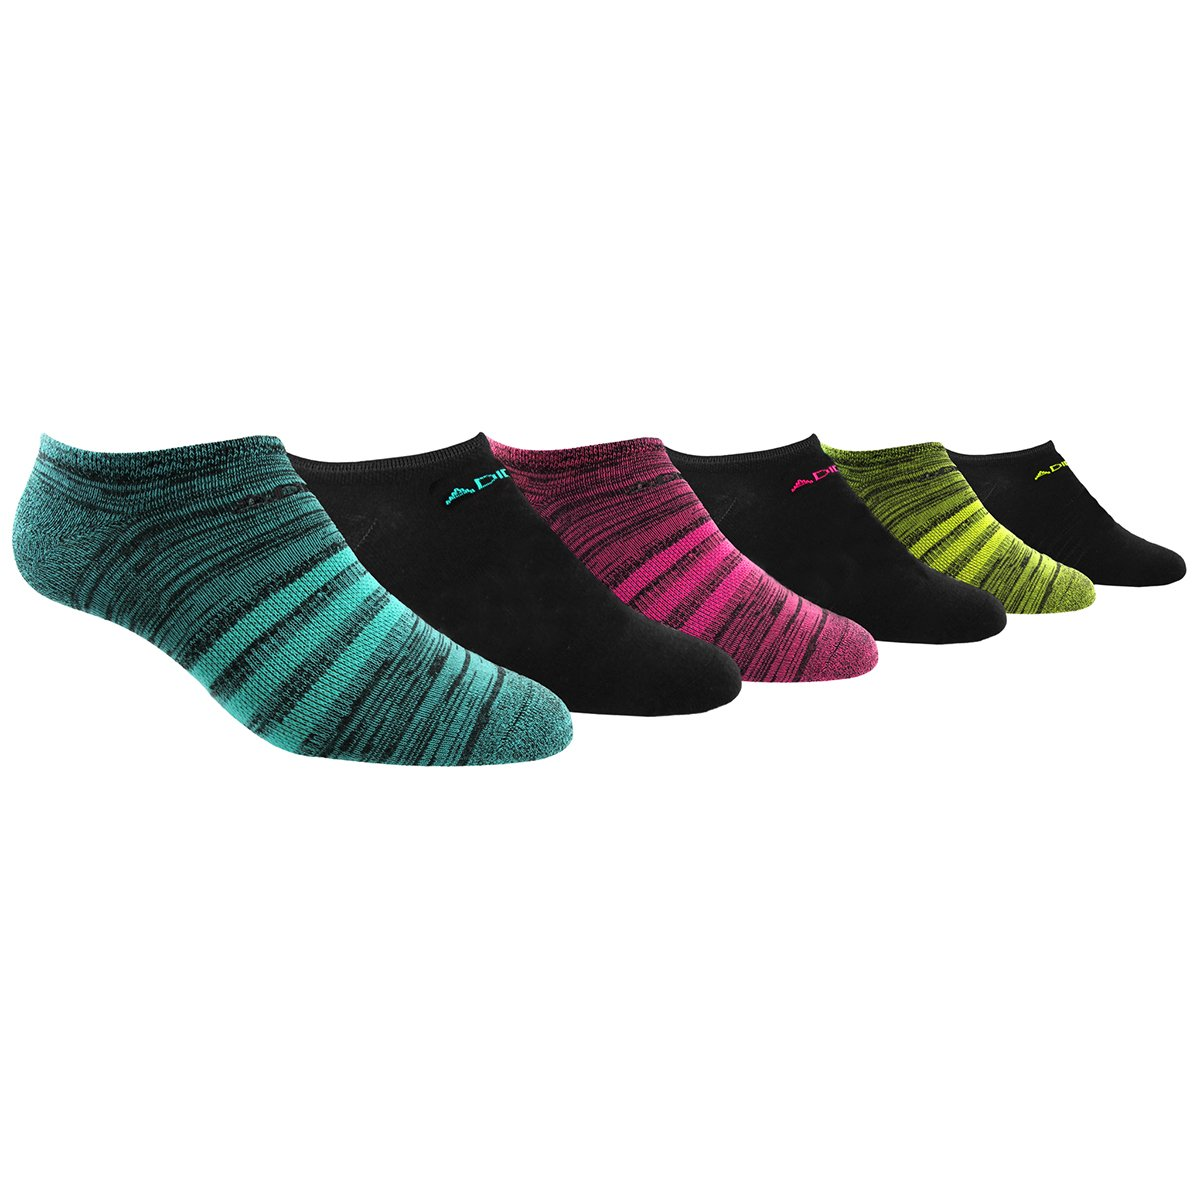 Adidas Women's Superlite No Show Socks (Pack of 6) 00_IFXFTXYD_AD